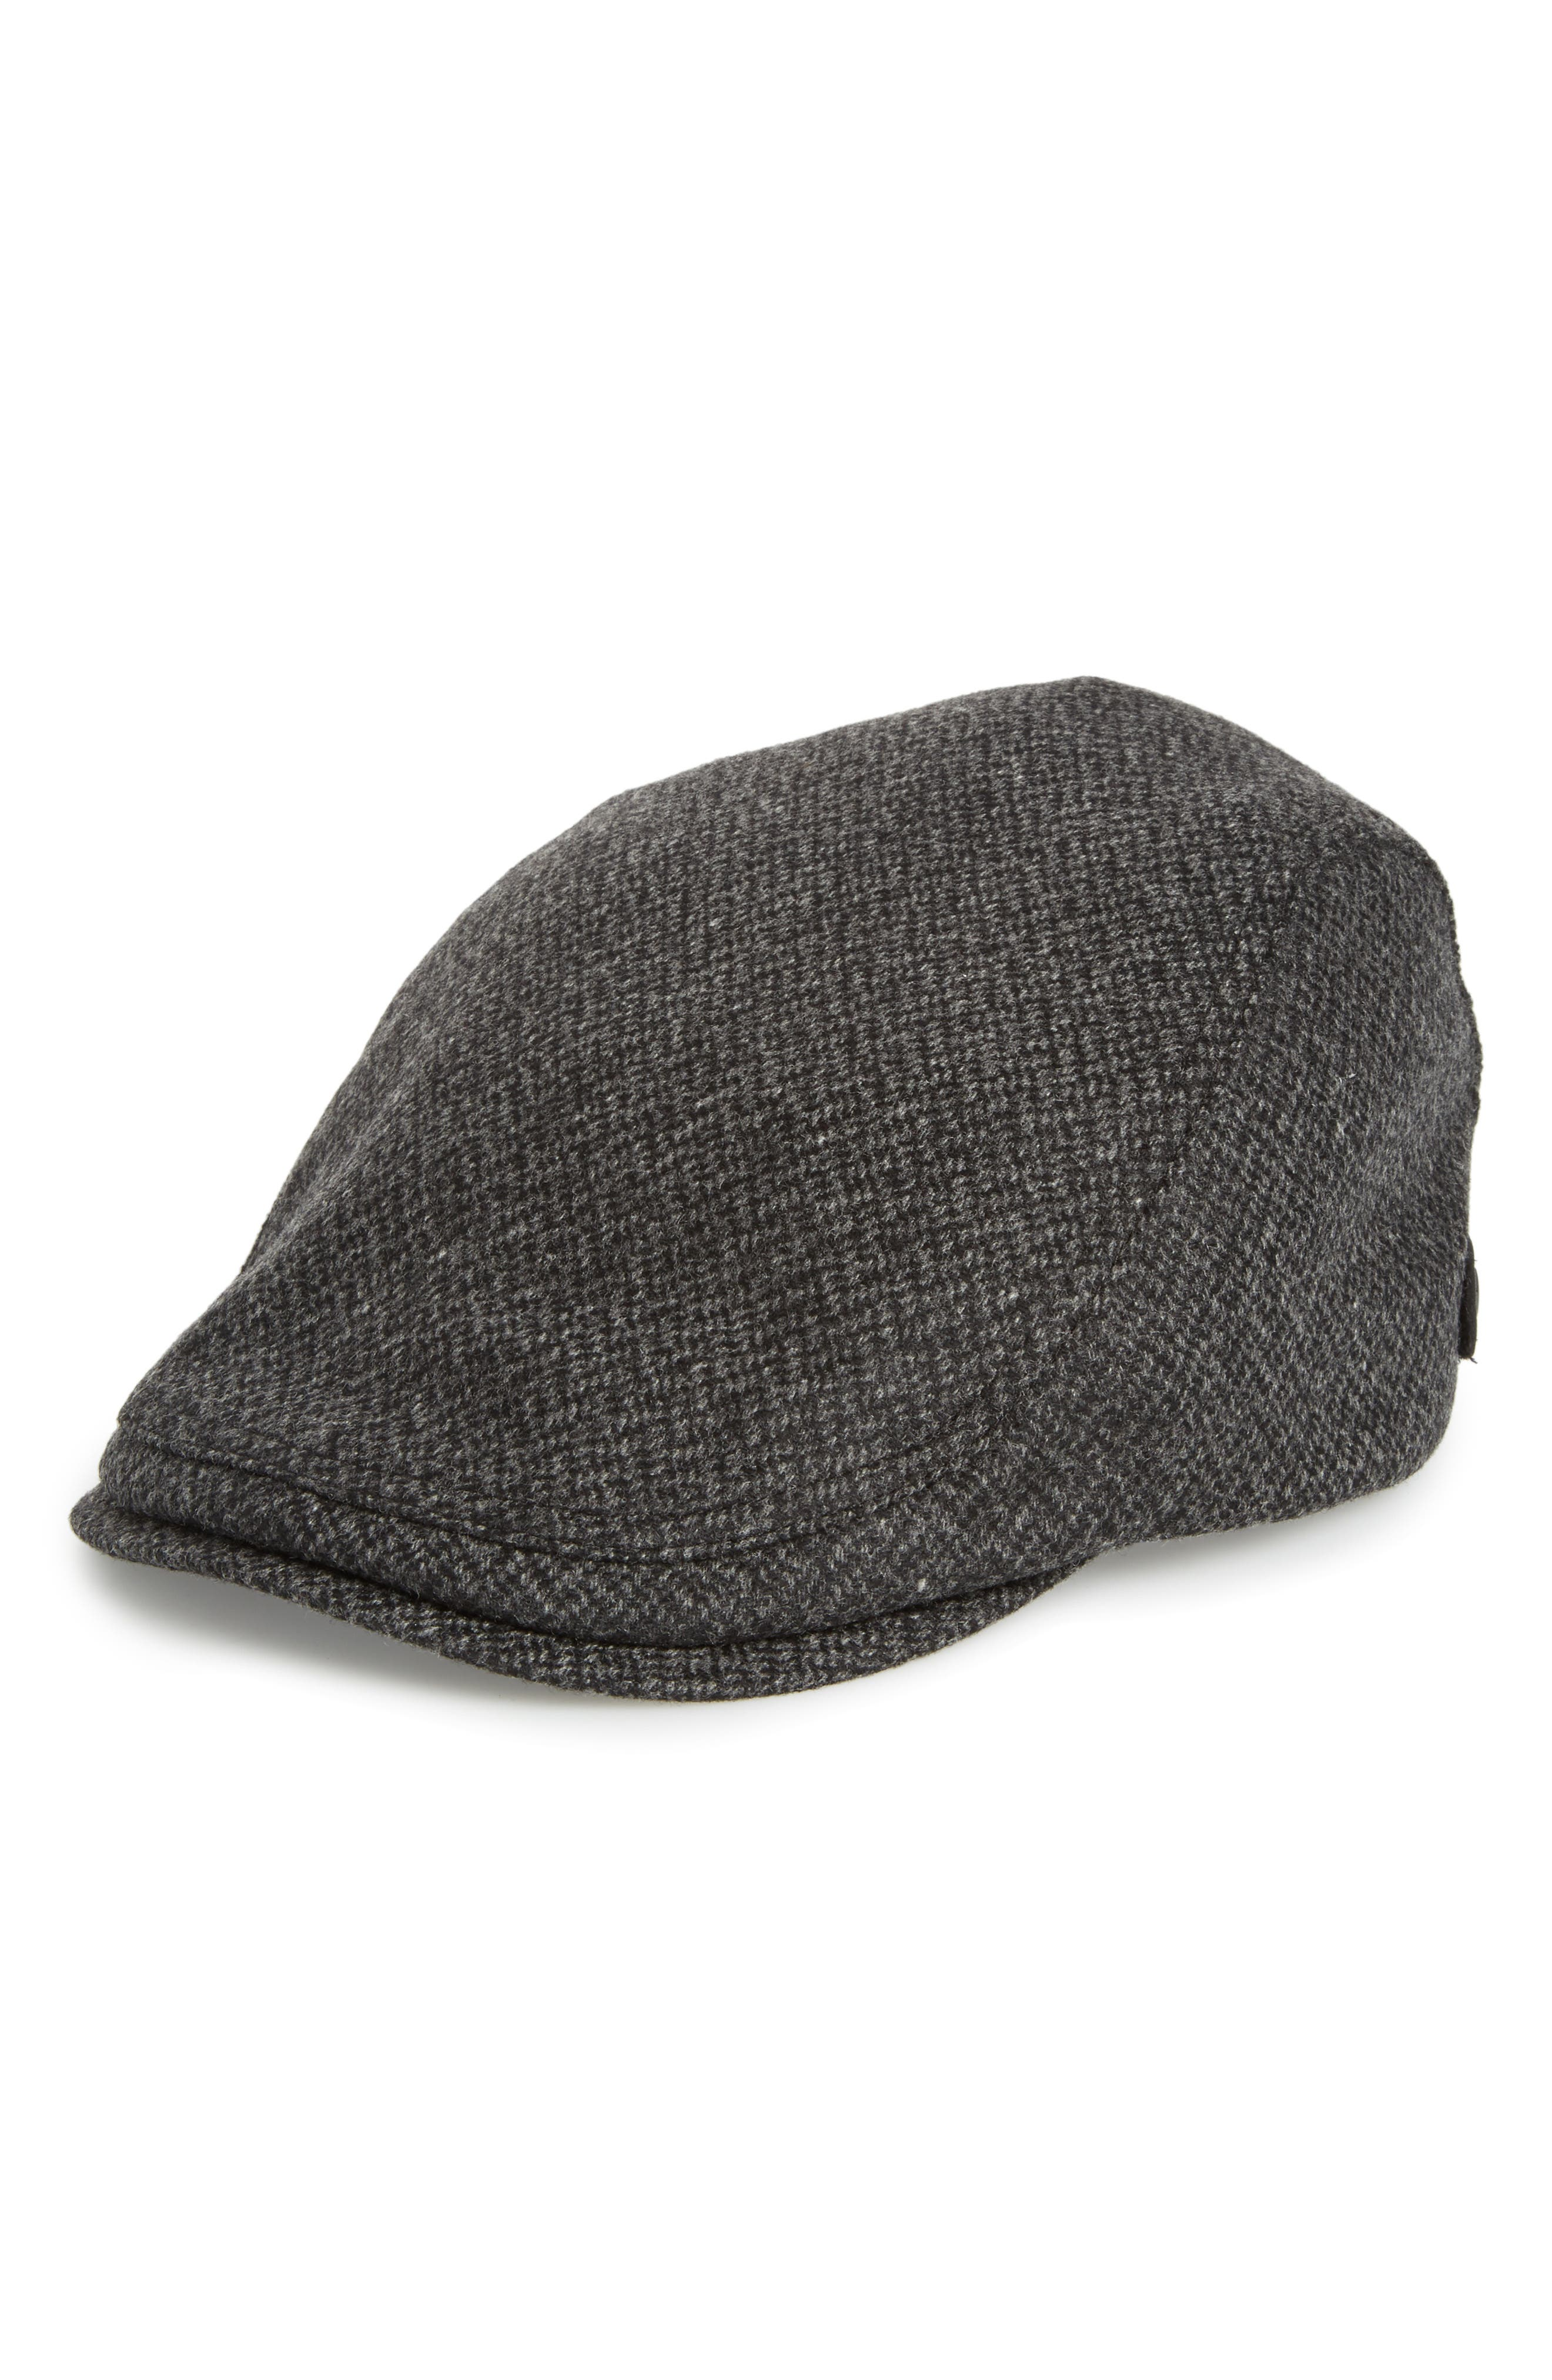 Ted Baker Thompson Wool Blend Flat Driving Cap,                         Main,                         color,